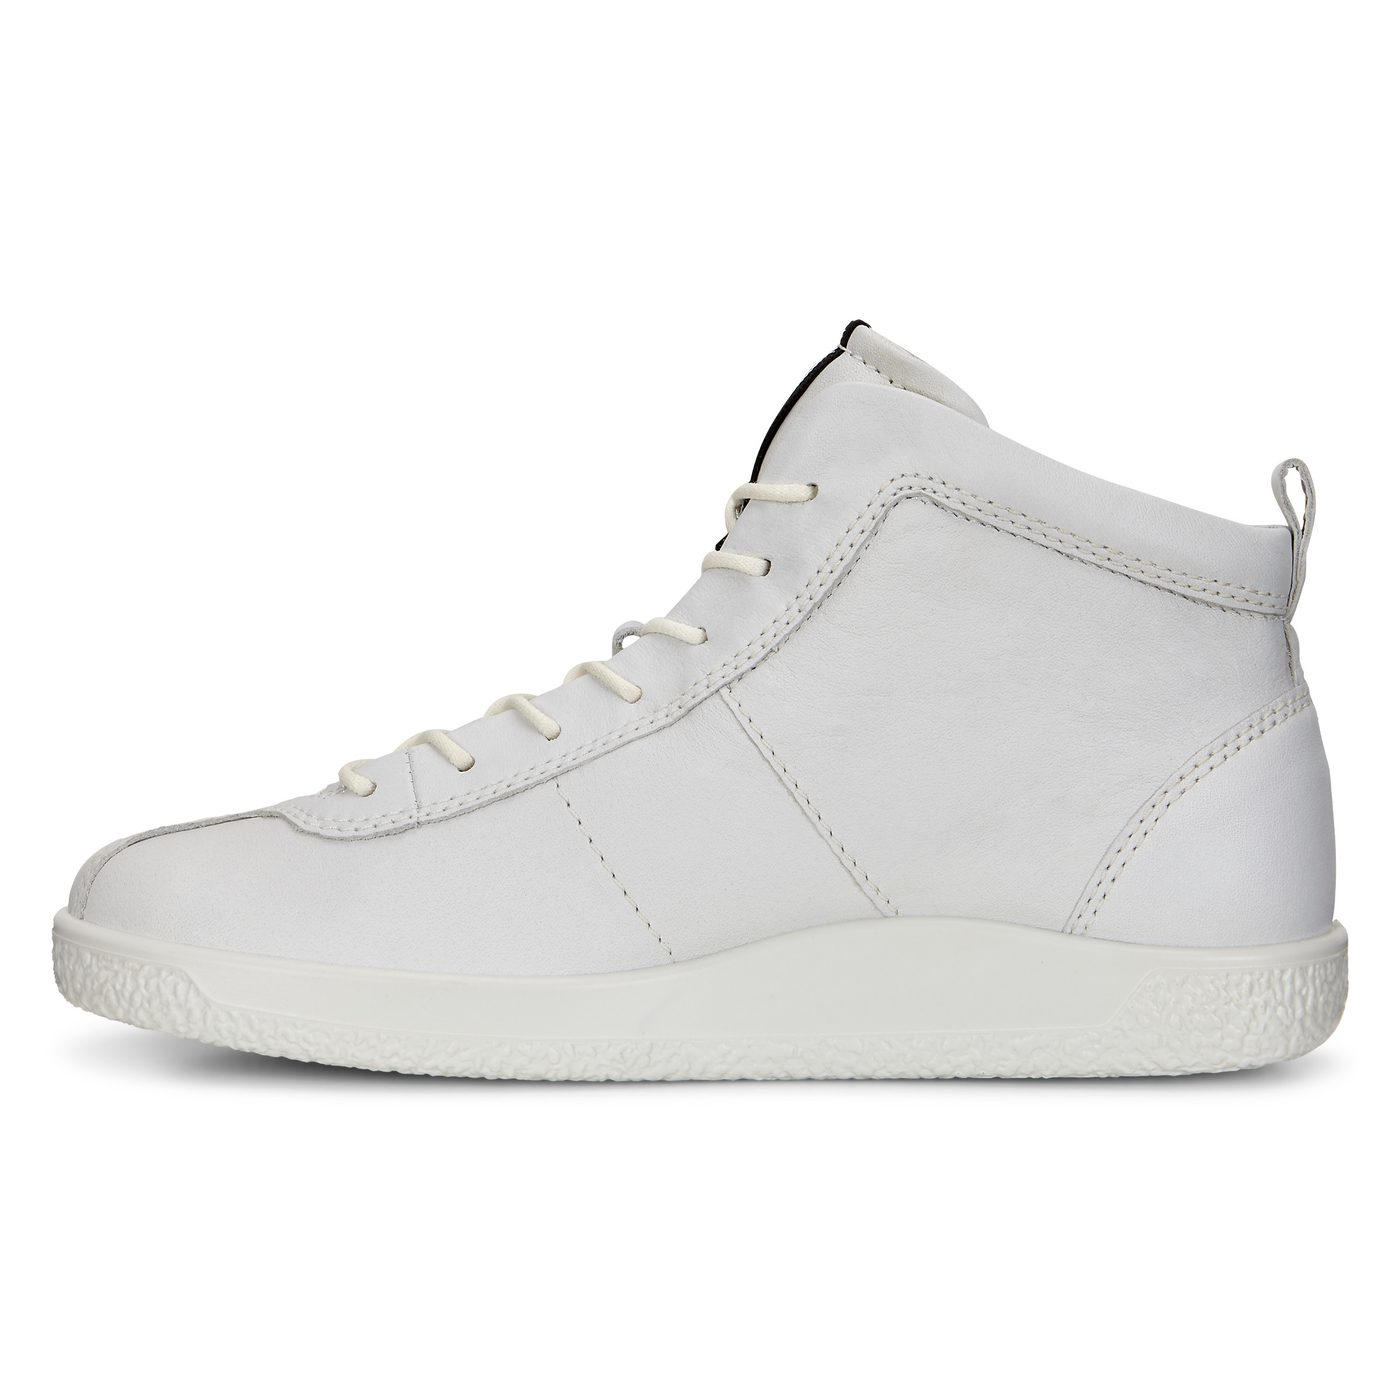 0e881bfb8a ECCO Women's Soft 1 High Top Sneakers | ECCO® Shoes